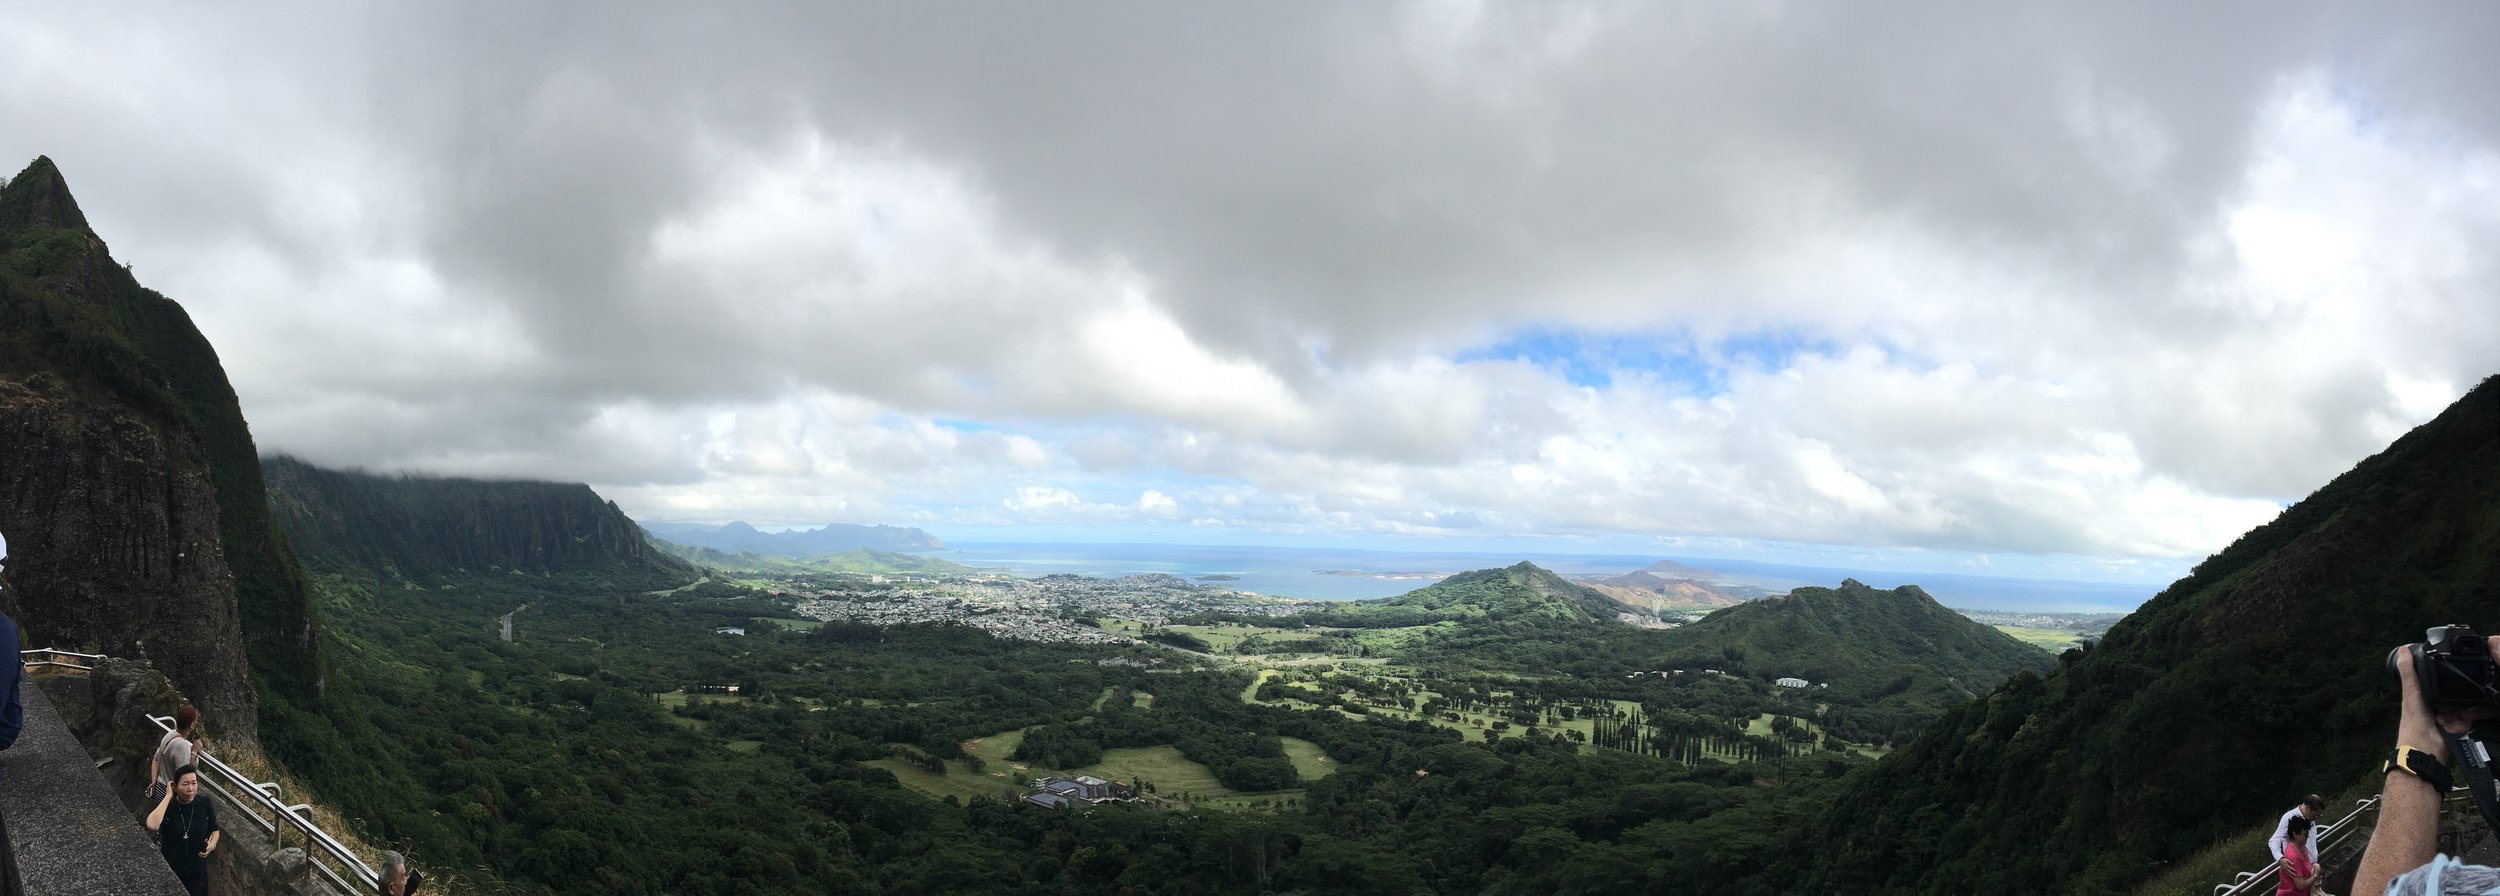 Pali Lookout View over Kaneohe